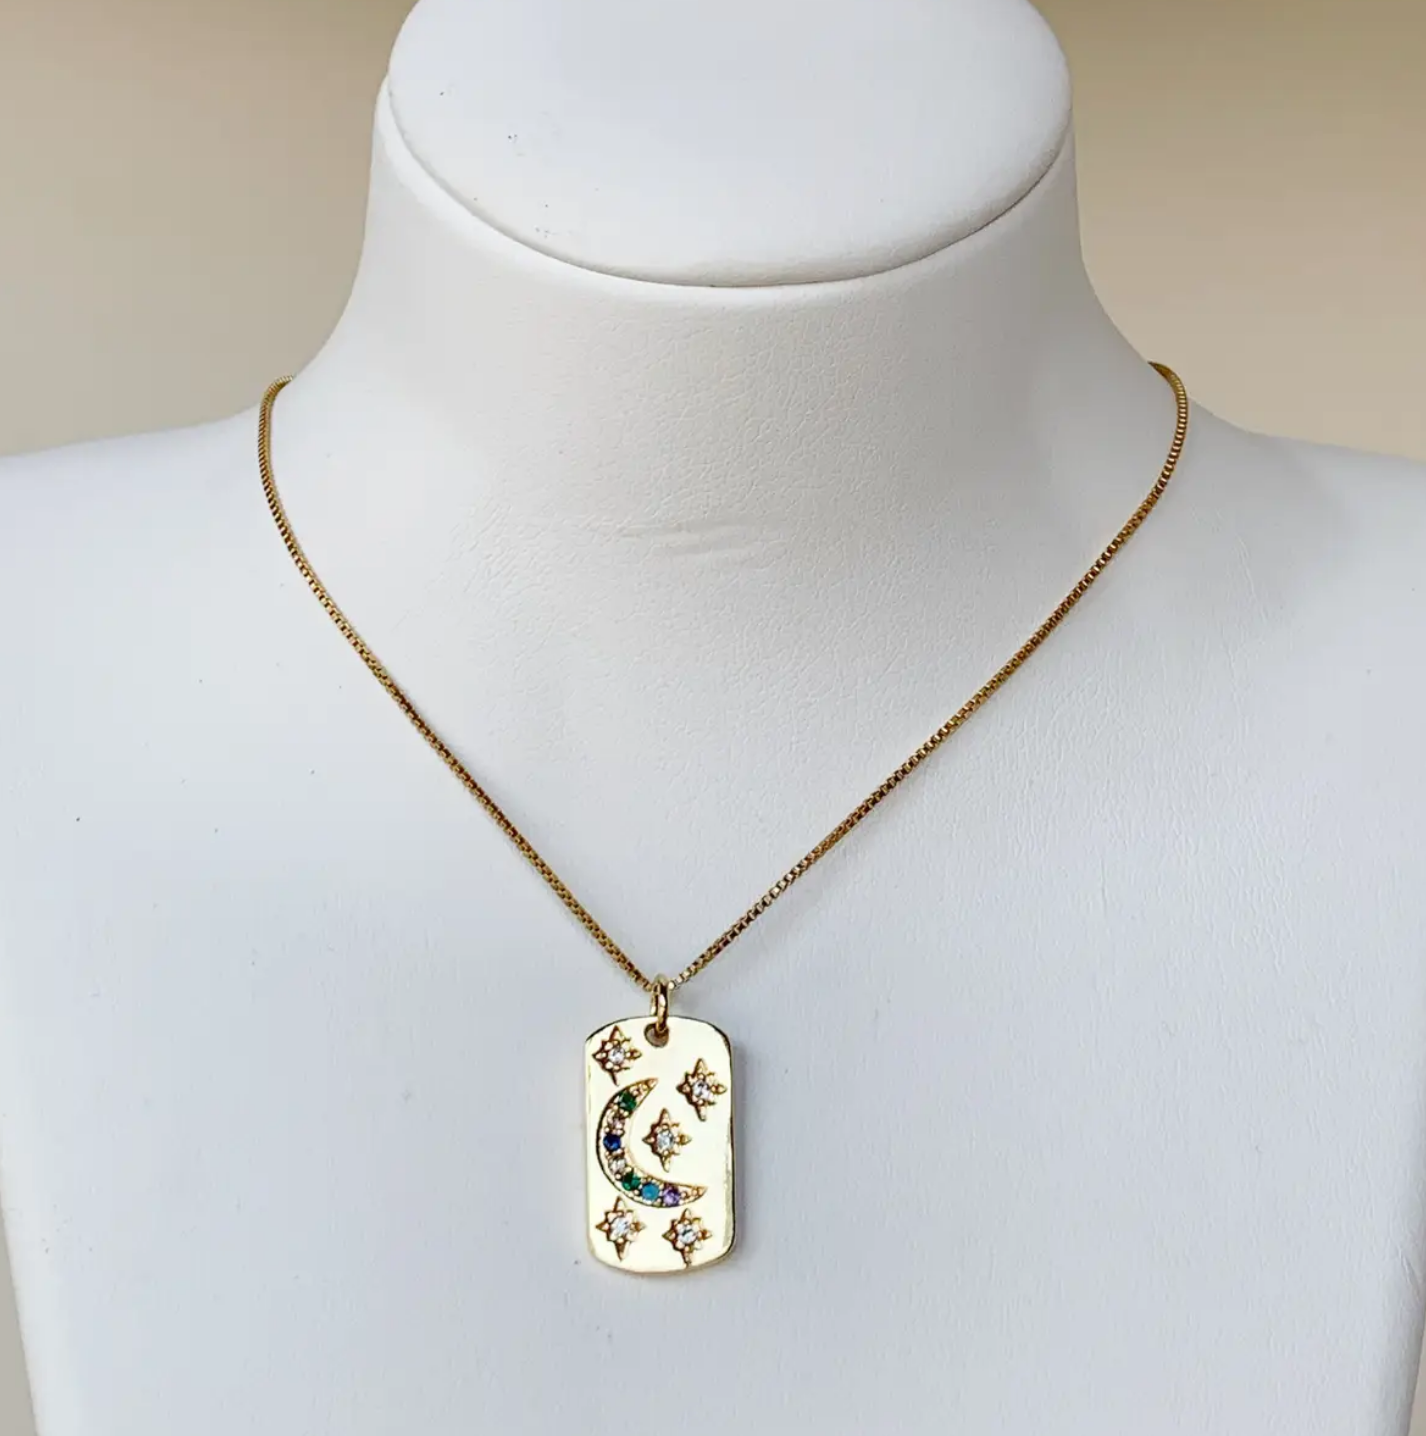 Bou-Cou Moon Tag Necklace